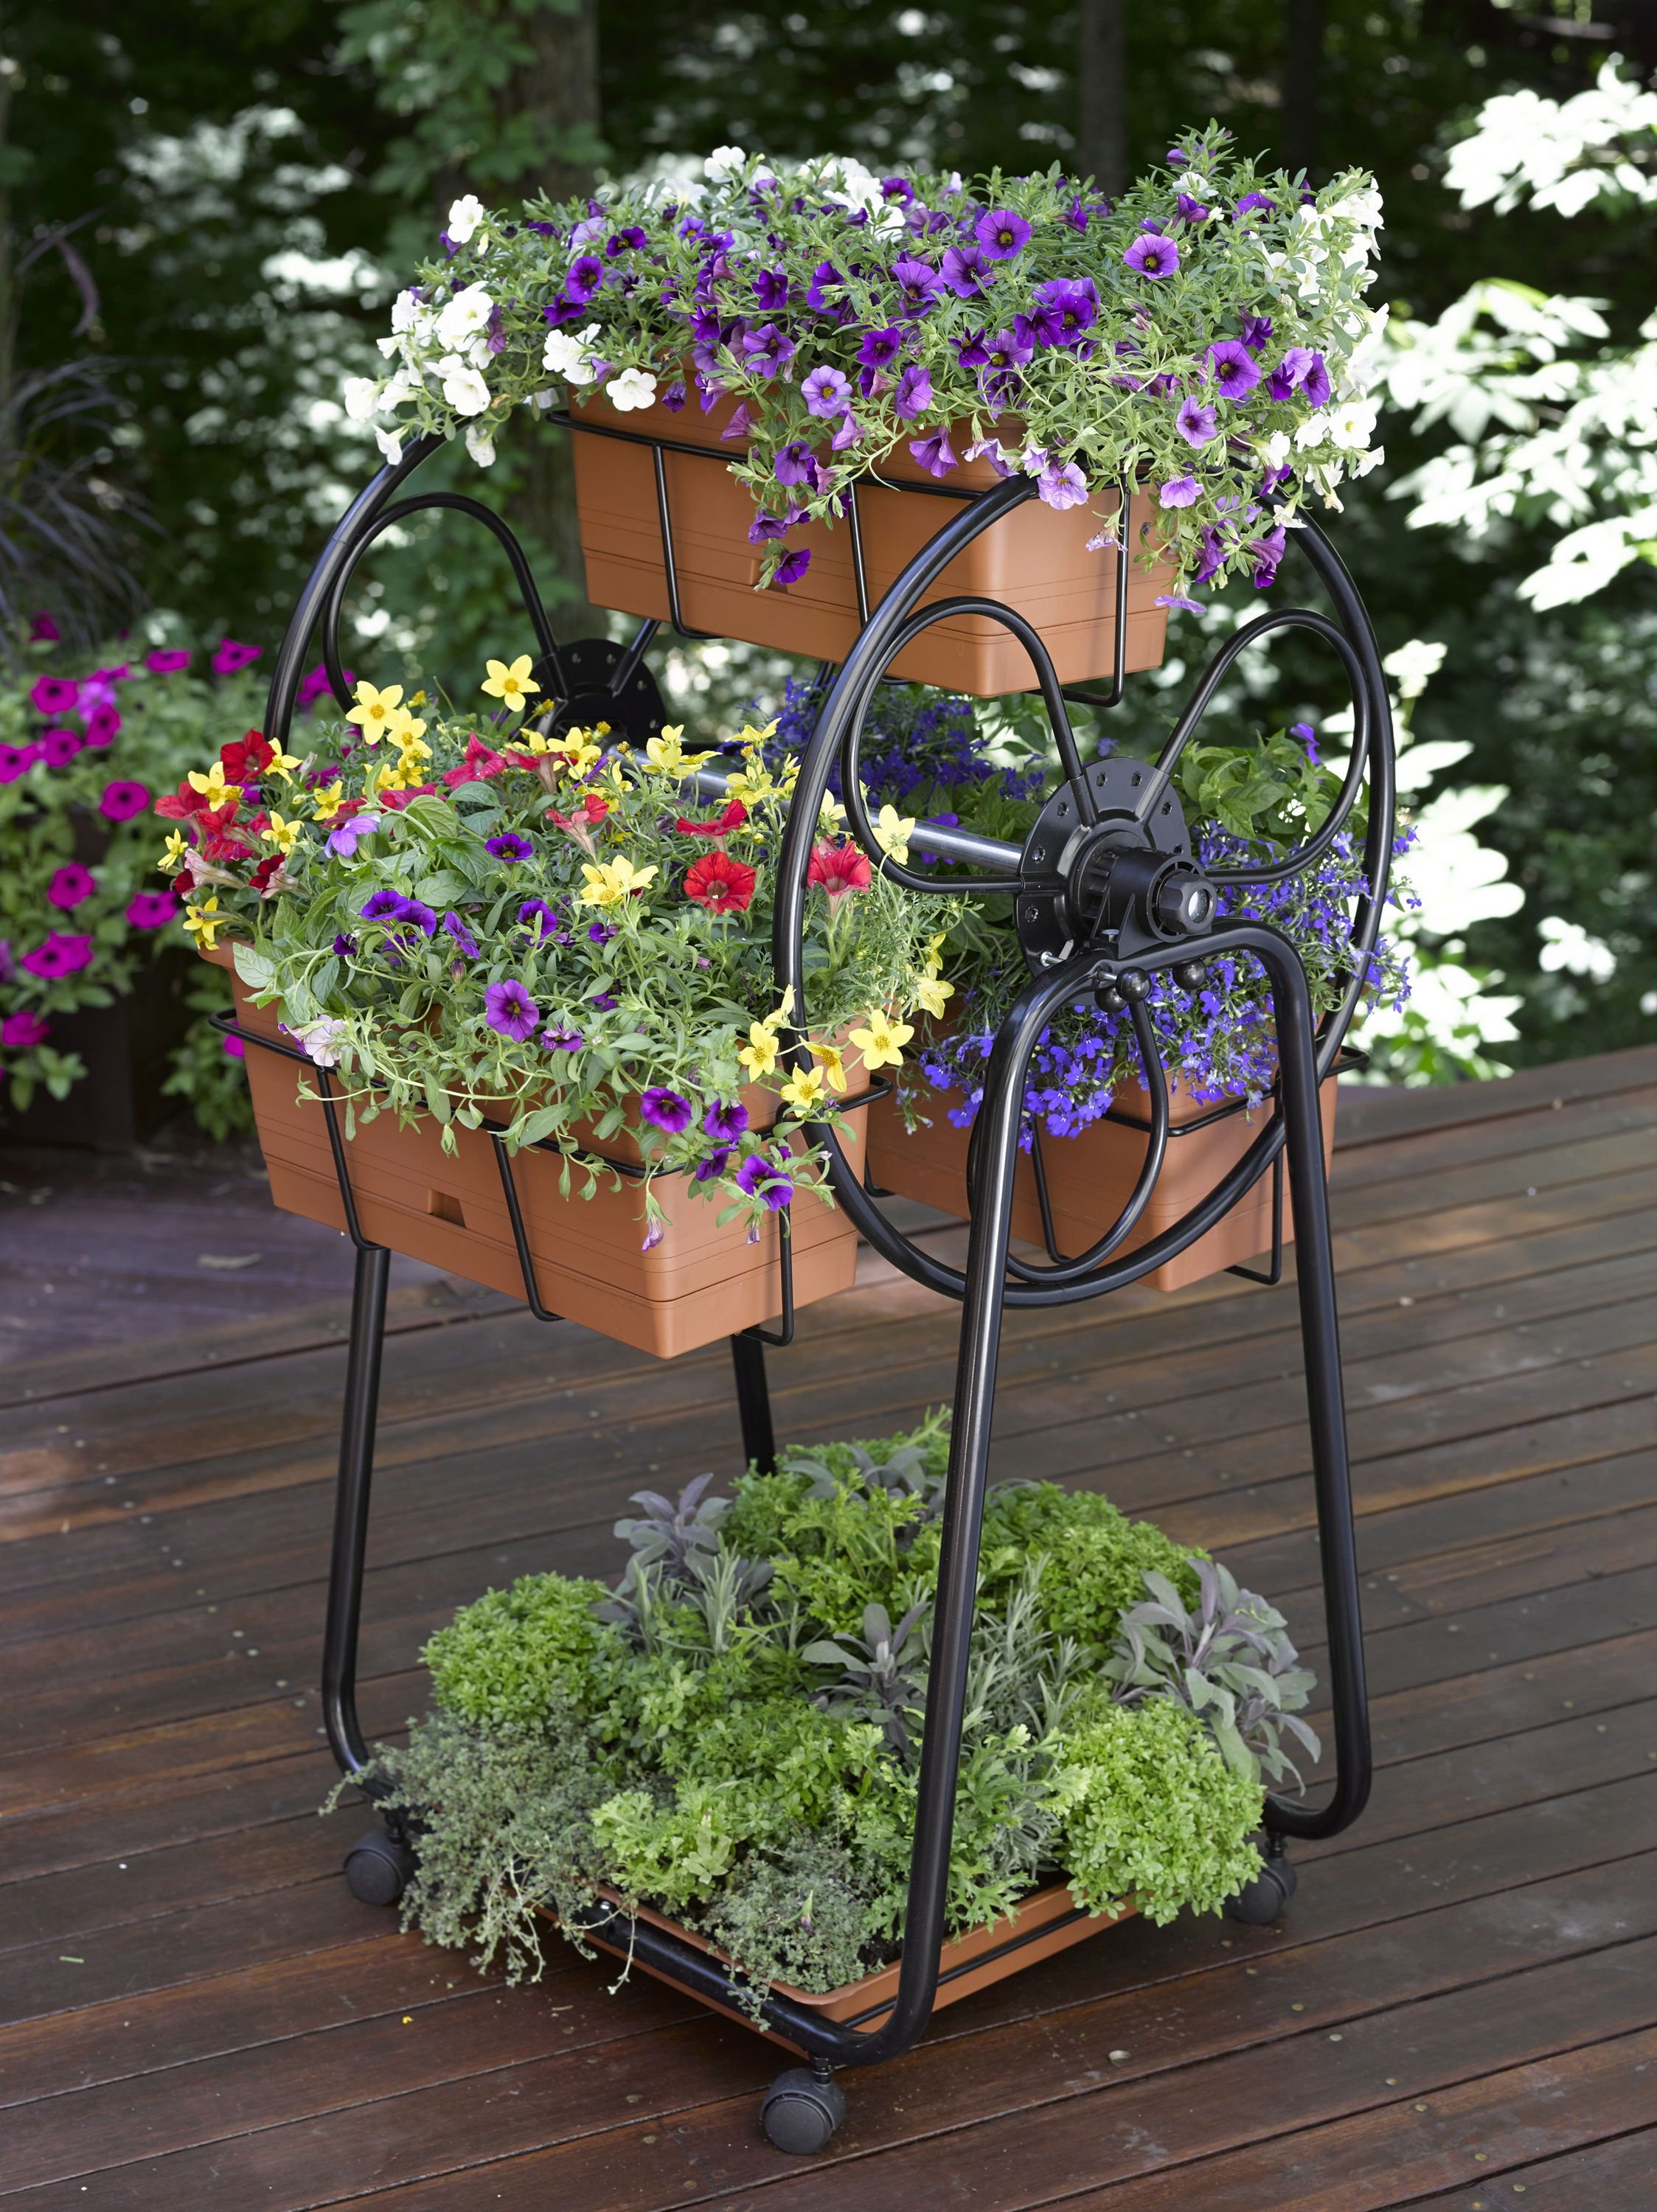 decorative planters: ferris wheel planter | gardener's supply